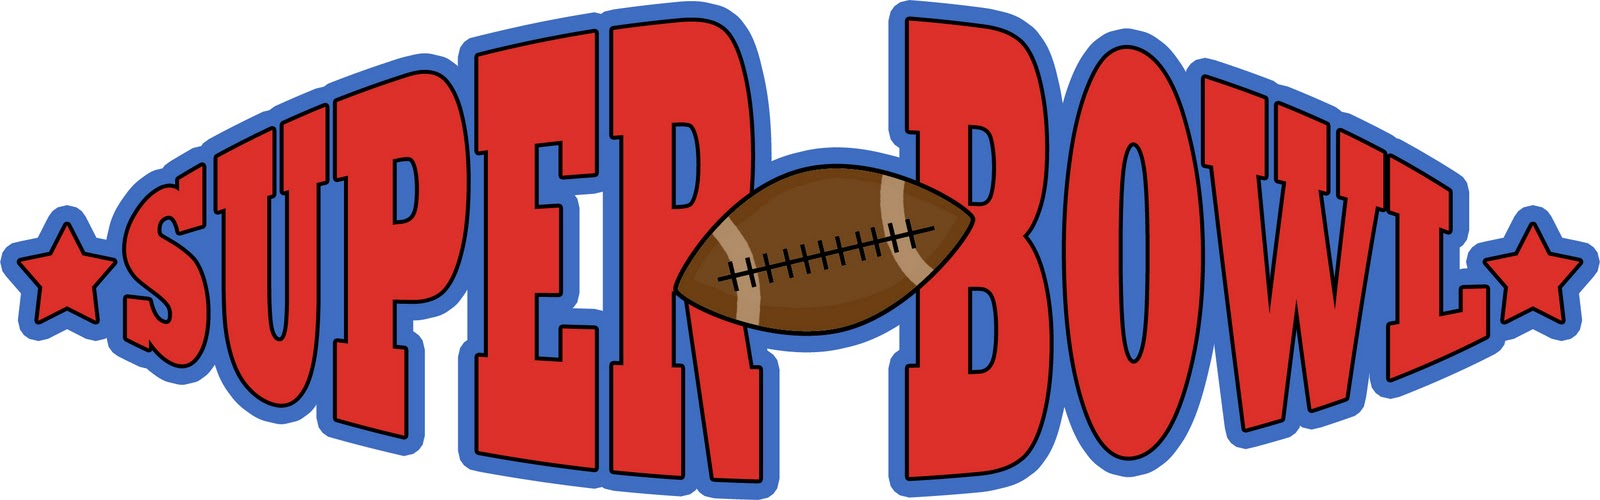 Super bowl 2017 clipart clip freeuse download Super Bowl 2017 Clipart at GetDrawings.com   Free for ... clip freeuse download